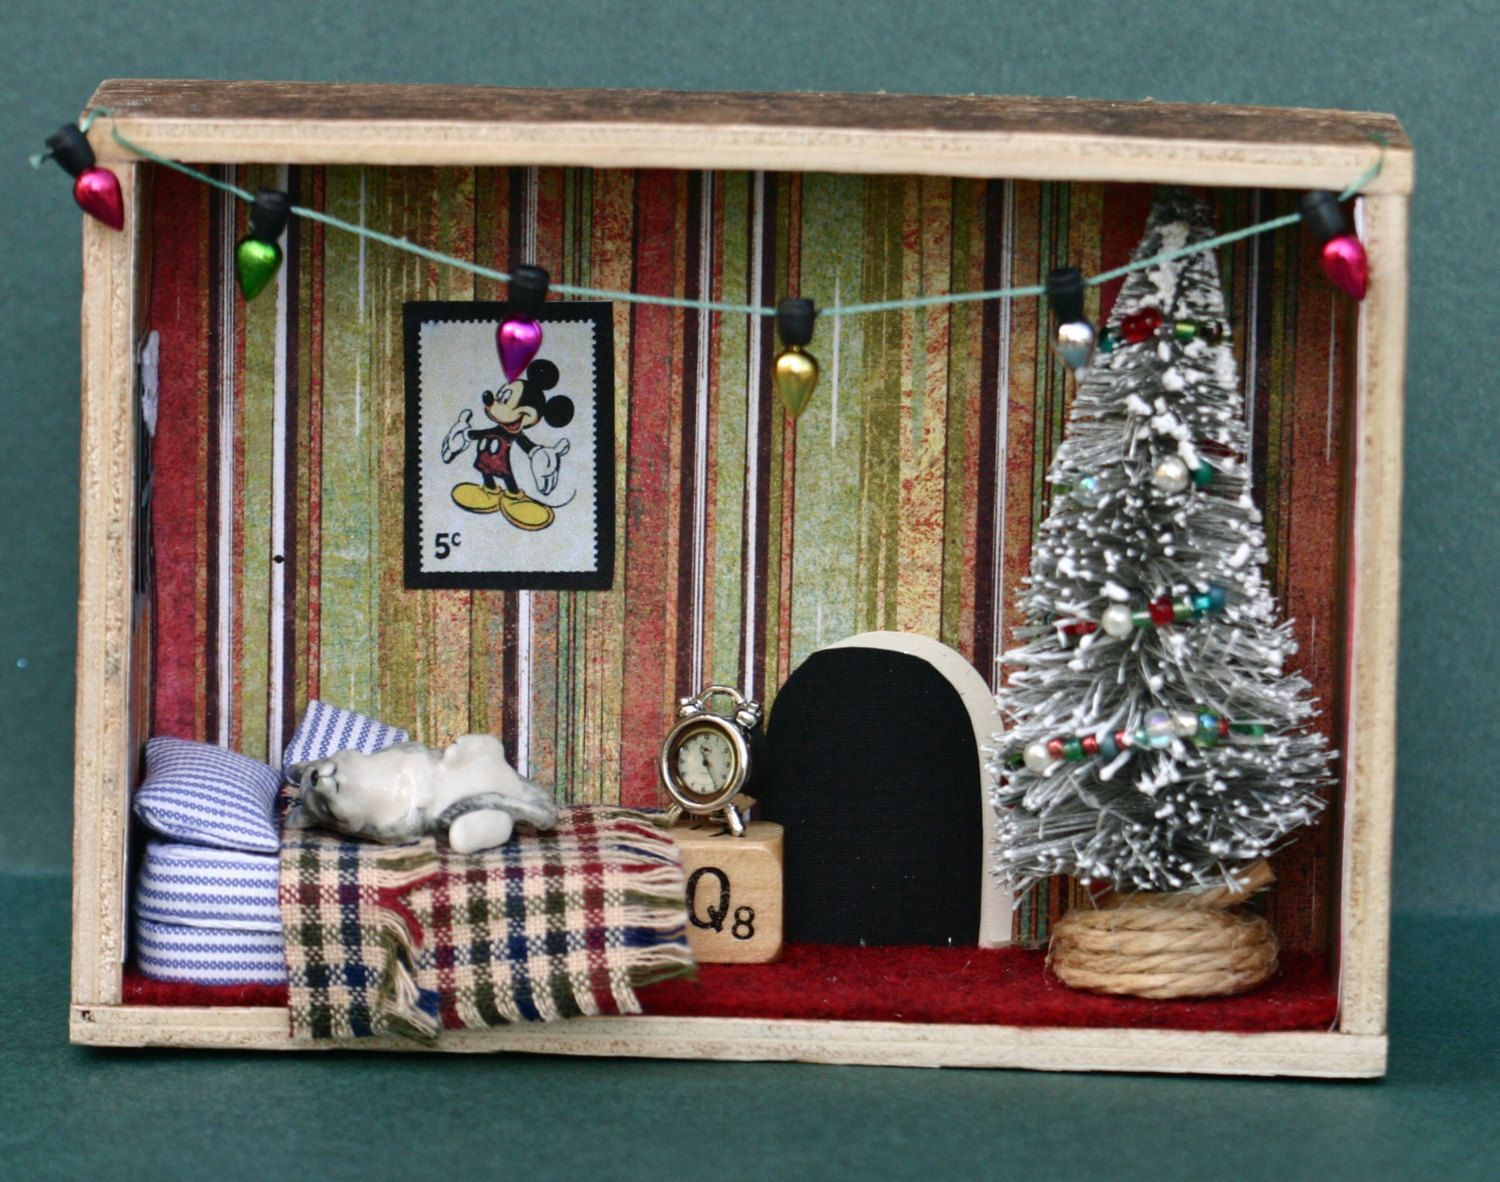 Miniature Children S Bedroom Room Box Diorama: Twas The Night Before Christmas Diorama, Shadow Box